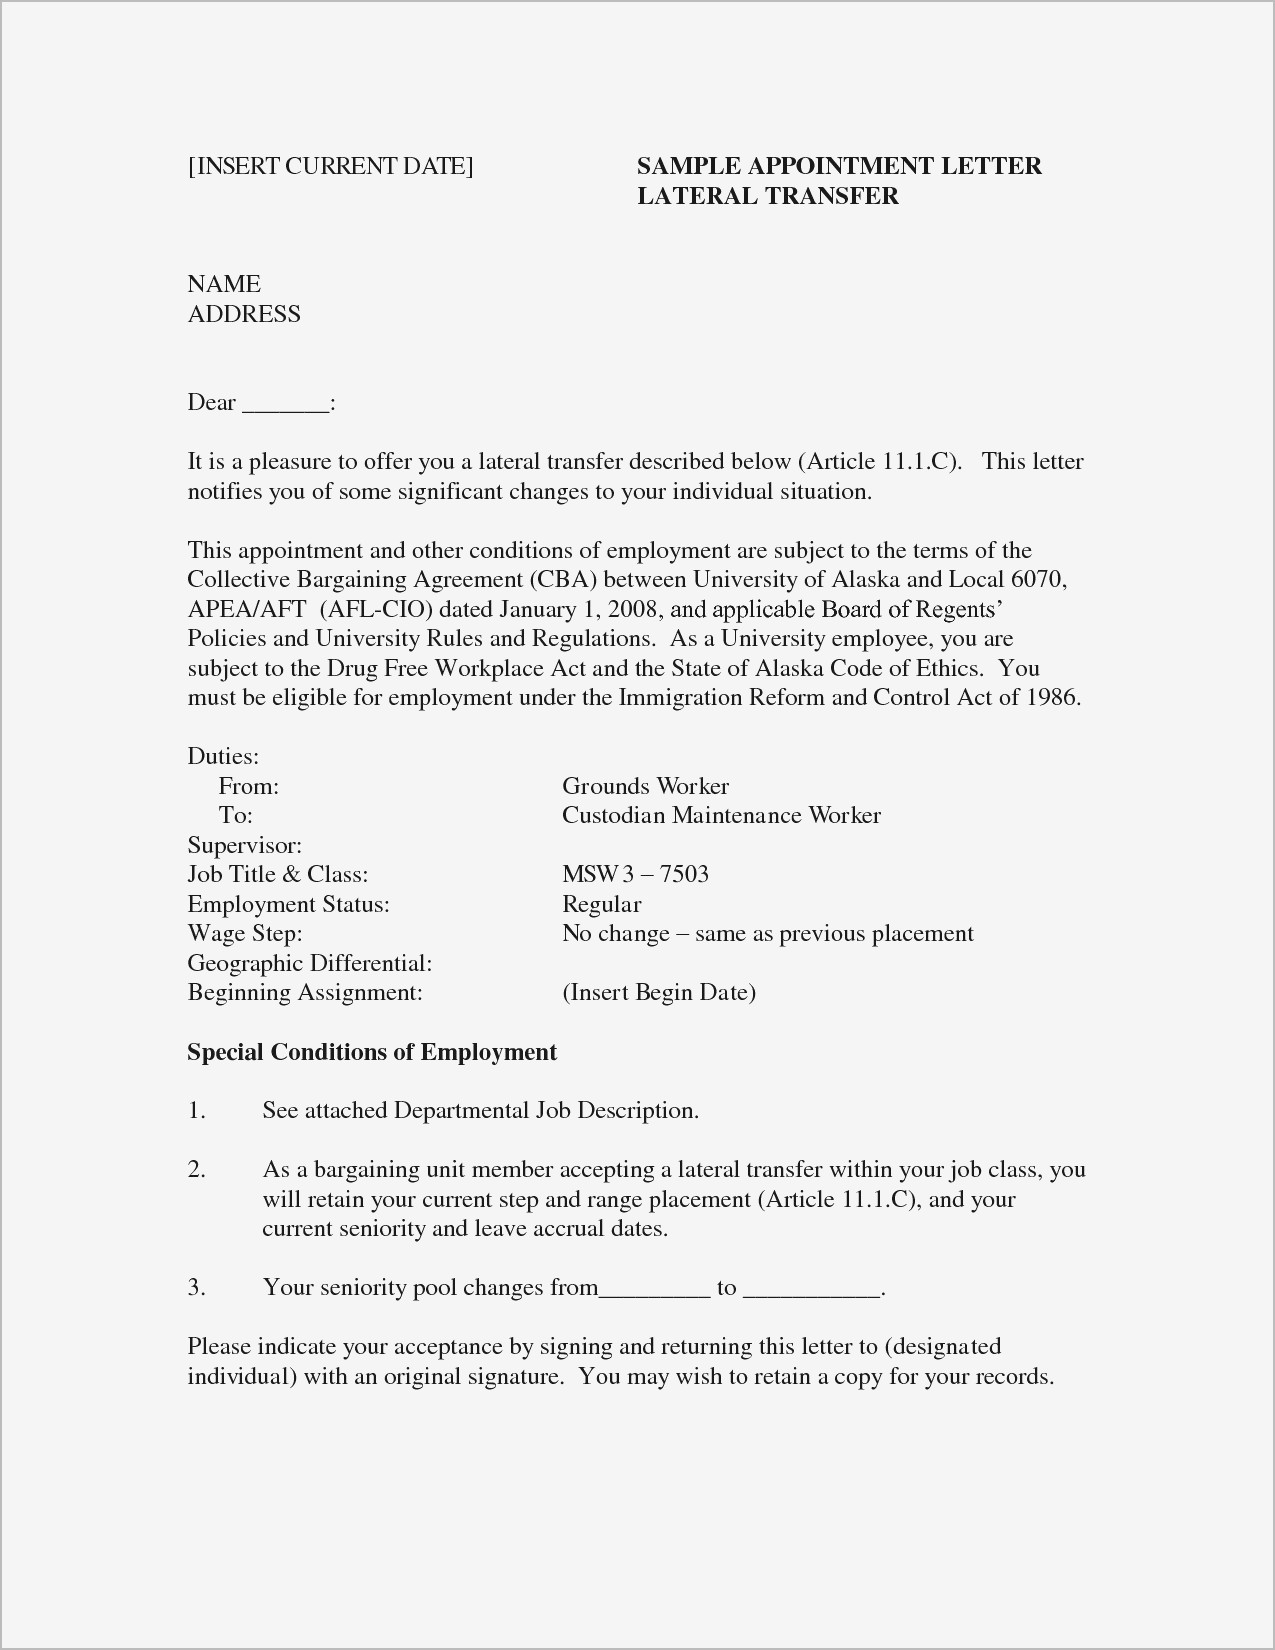 Sample Job Offer Letter Template - Sample Cover Letter for Job Fer Refrence Job Fer Letter Template